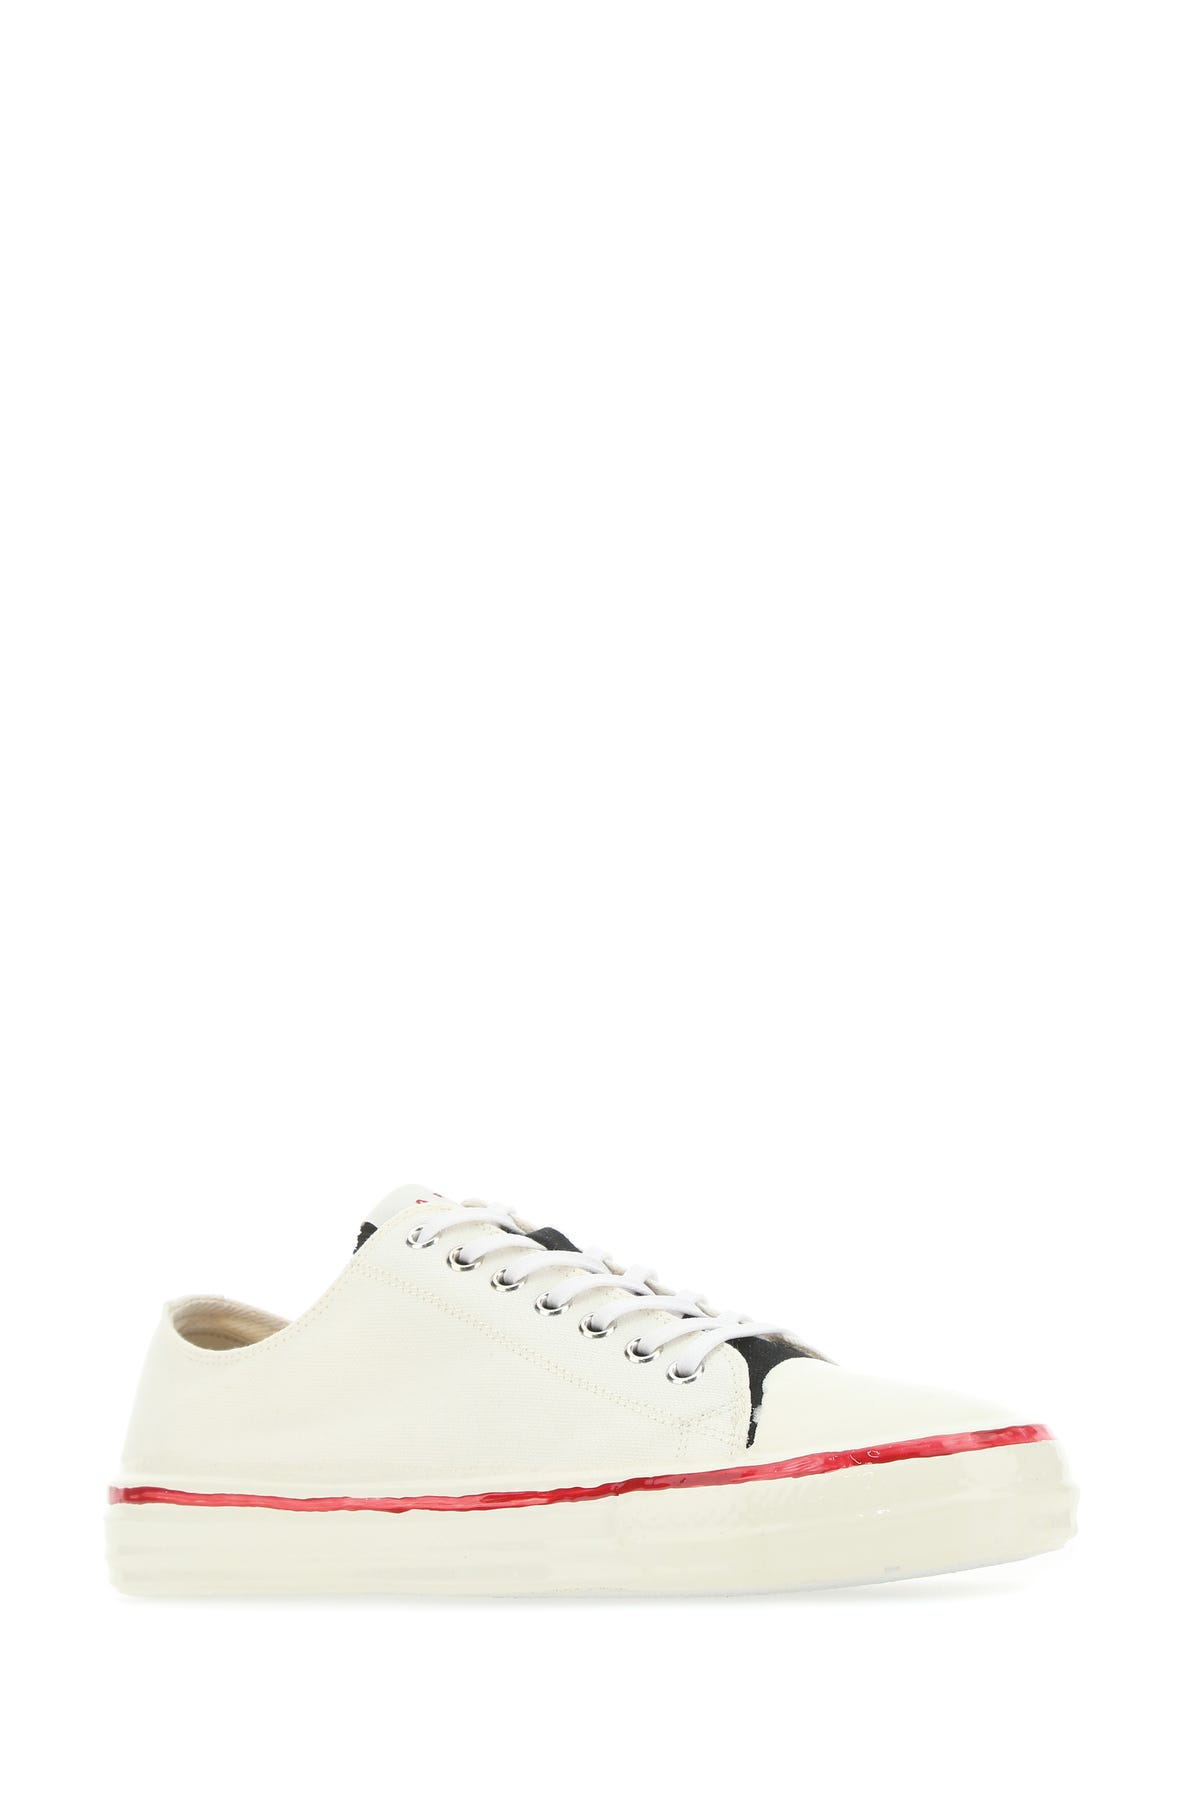 MARNI Canvases SNEAKERS-39